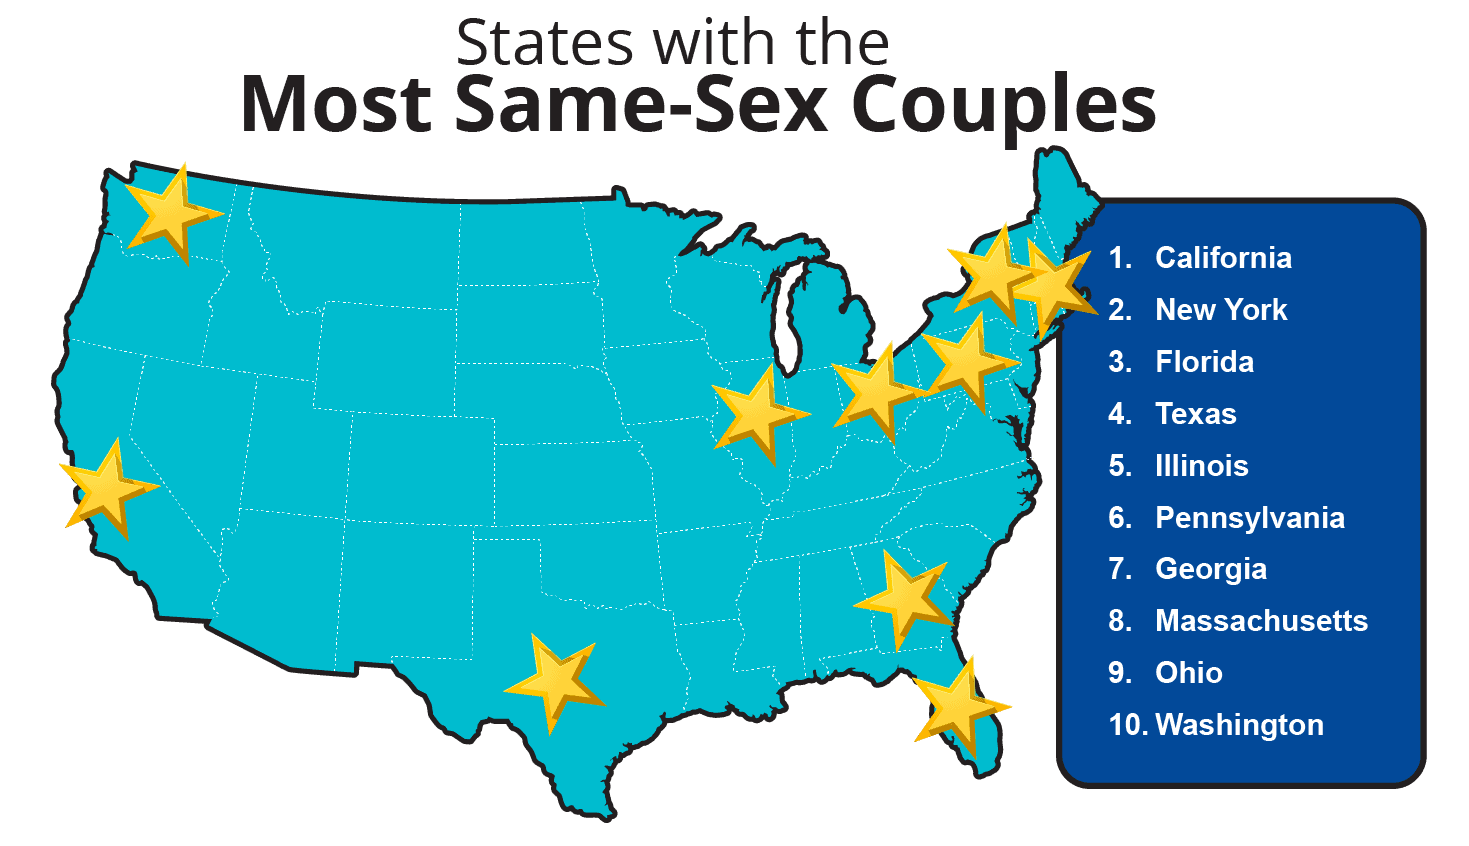 states-with-the-most-same-sex-couples